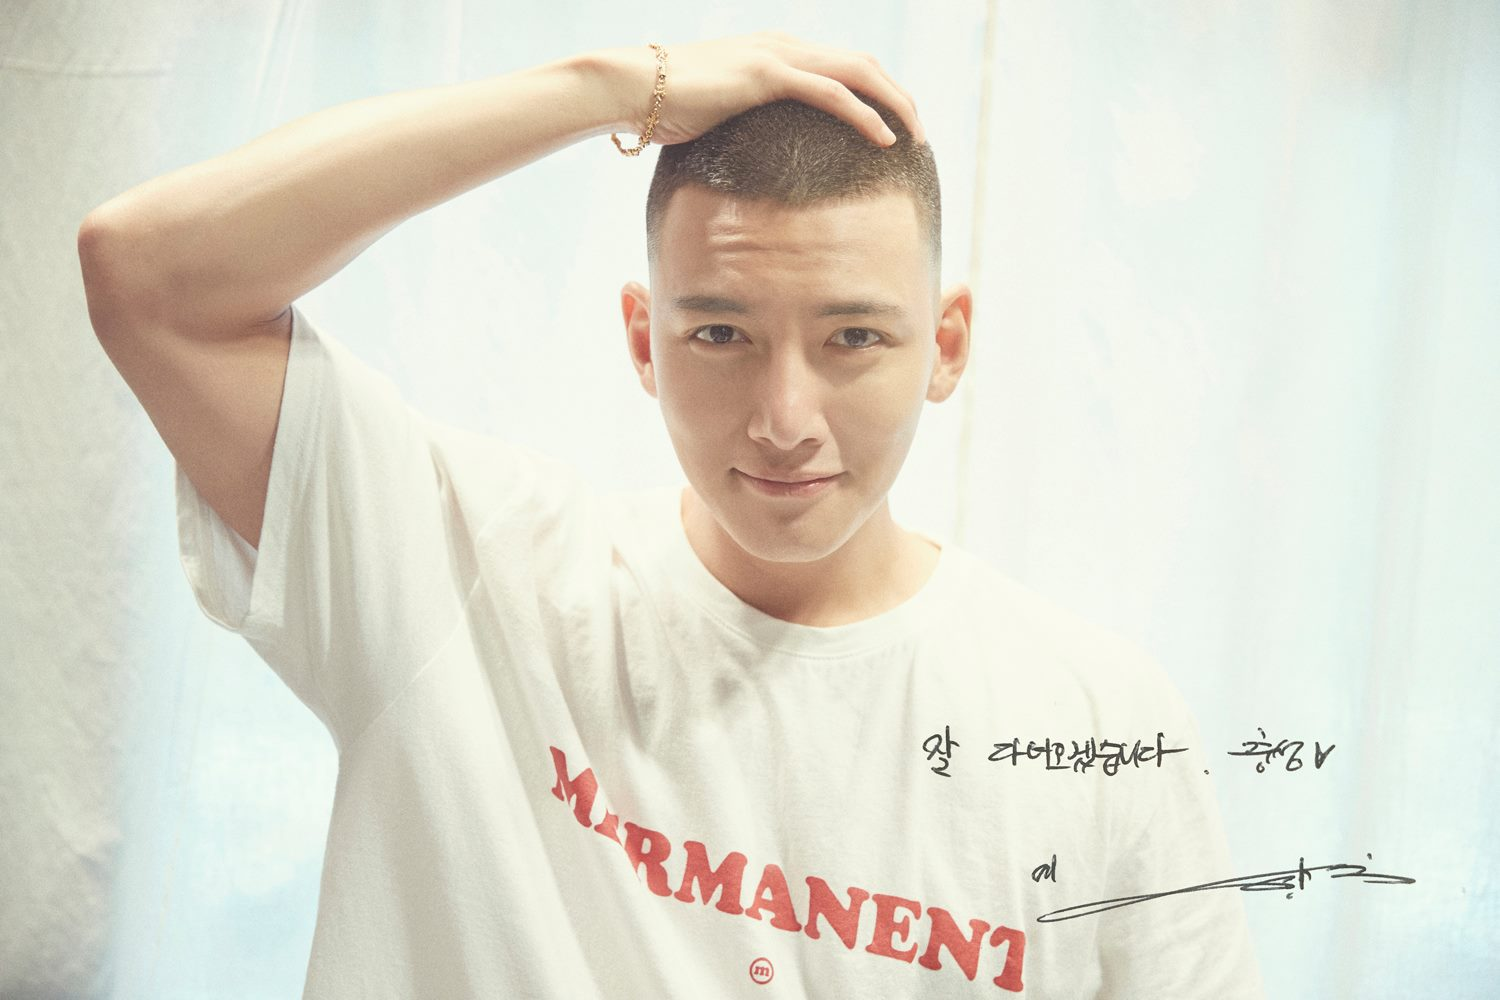 Ji Chang Wook Reveals Photos Of His Shaved Head Ahead Of